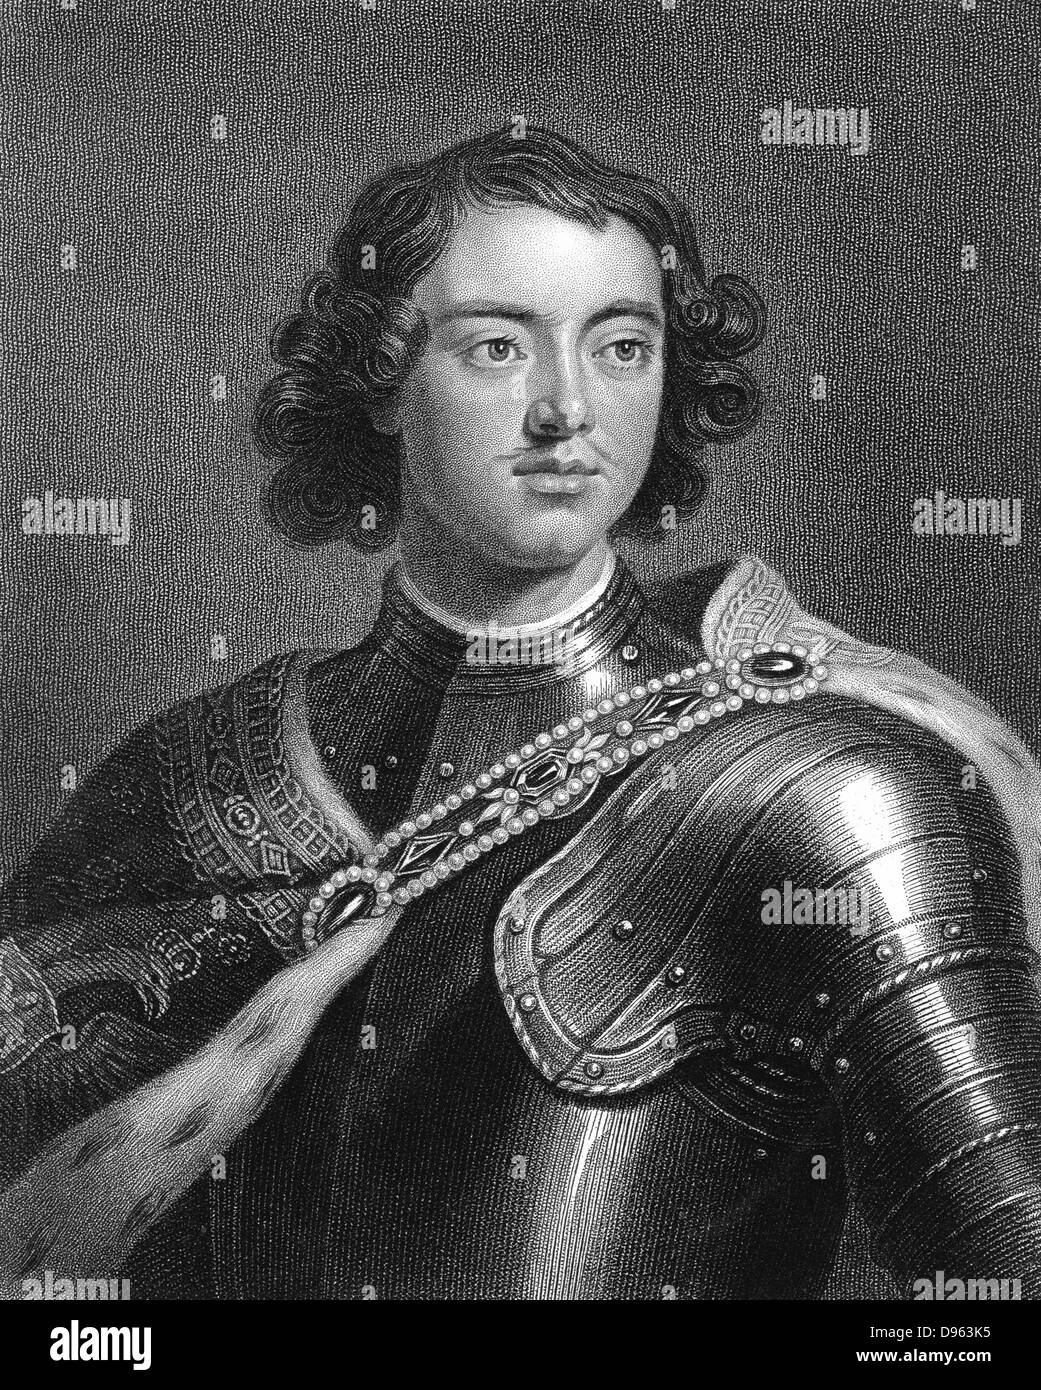 Peter I the Great (1672-1725. Tsar of Russia from 1682. Engraving - Stock Image